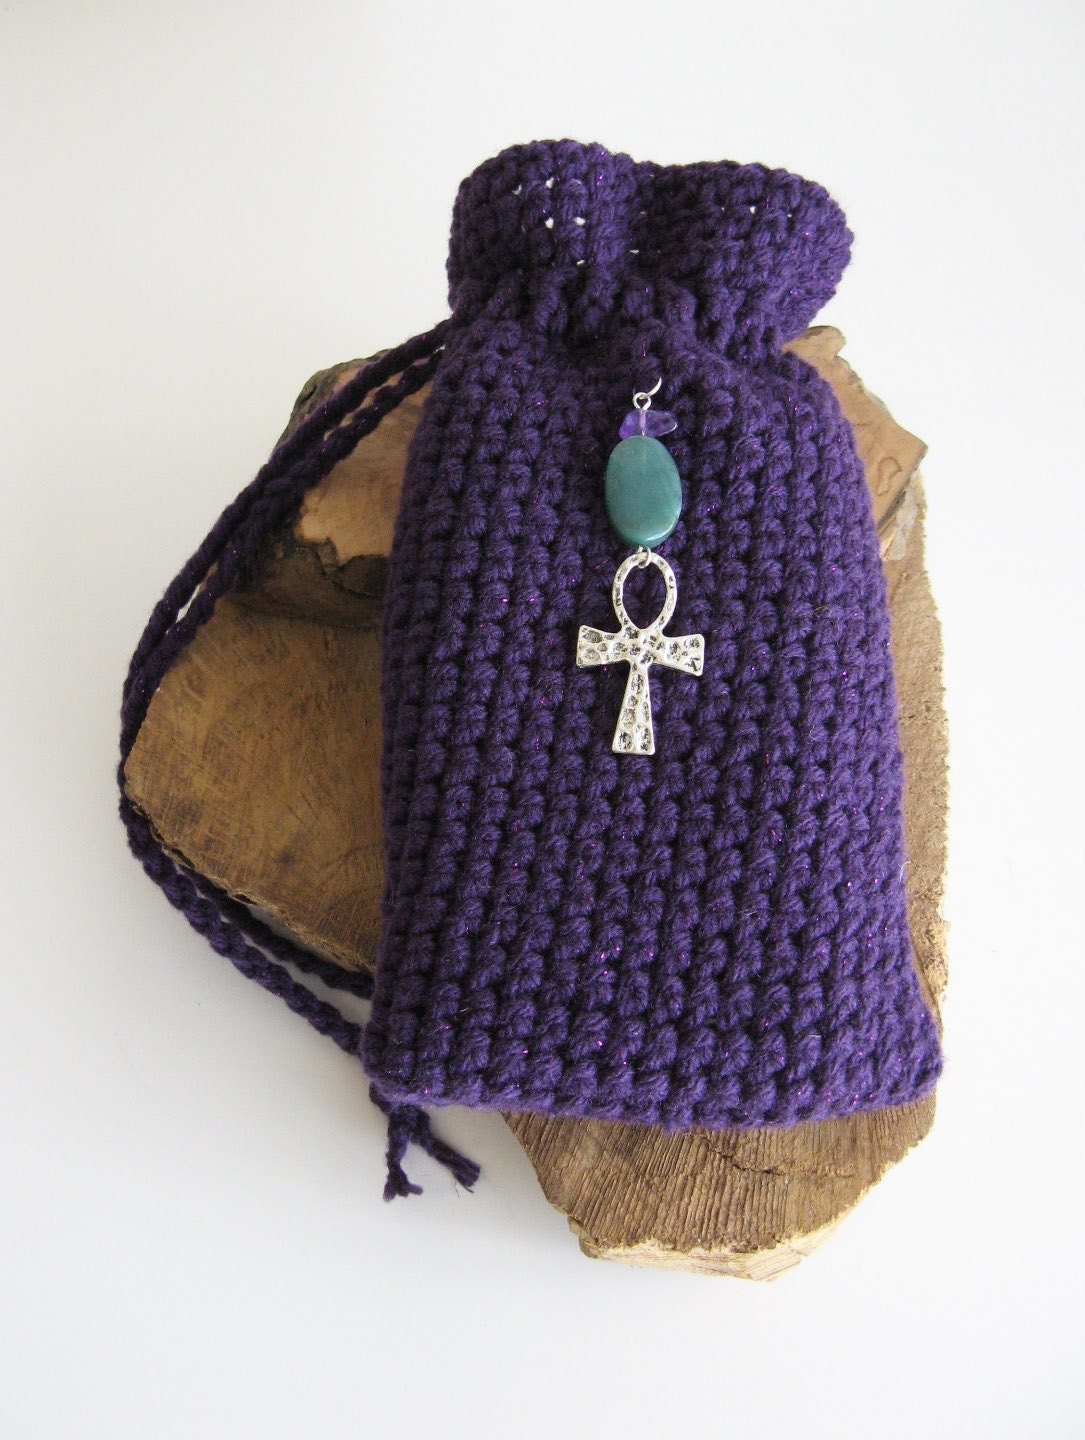 Tarot Bags Tarot Cards Cloths More: Egyptian Ankh Tarot Bag Hand Crochet Purple Tarot Bag Green